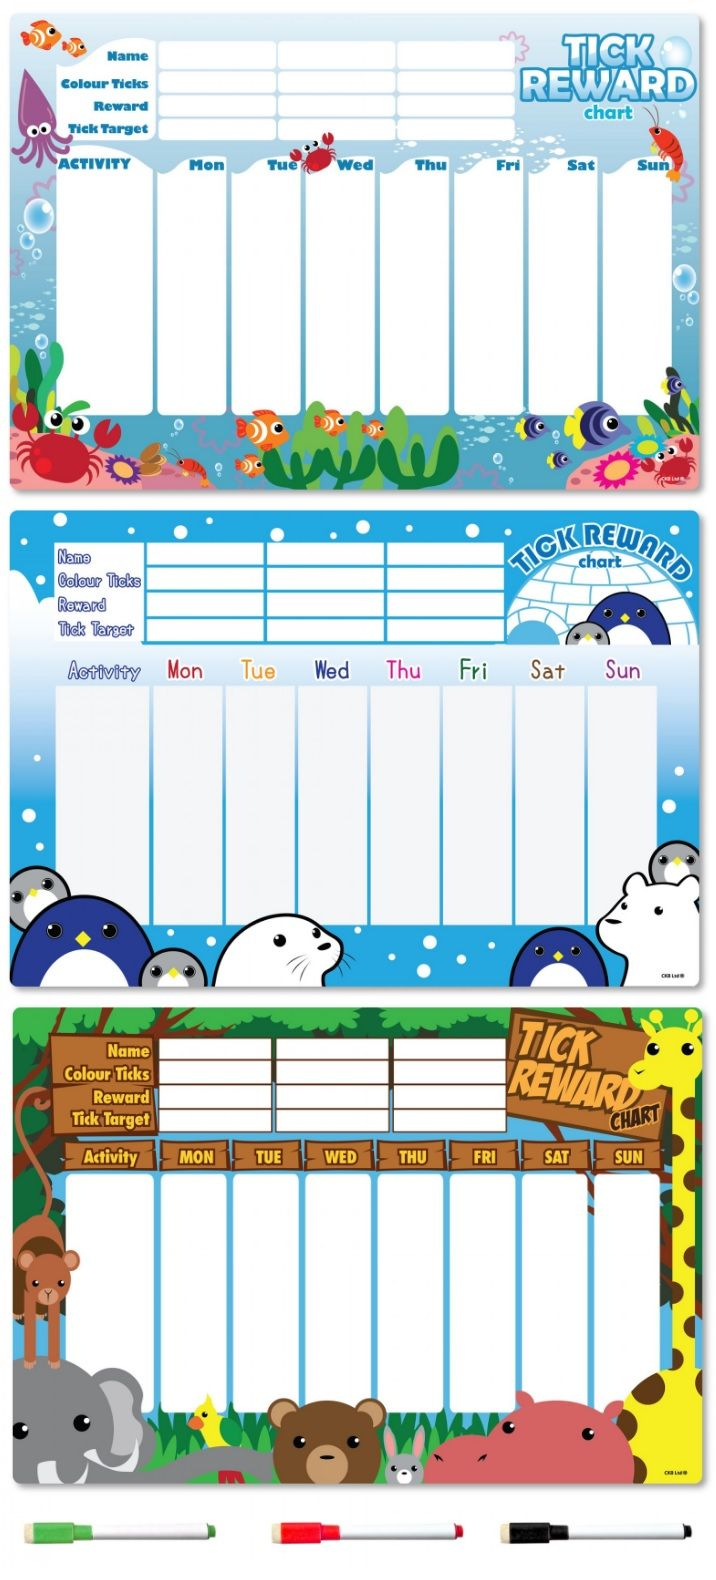 Support your child's positive behavior and accomplishments. The CKB Ltd Magnetic Reward Chart will stick to any metal surface like a fridge in the kitchen. The fun designs make it more engaging for a preschool kid.